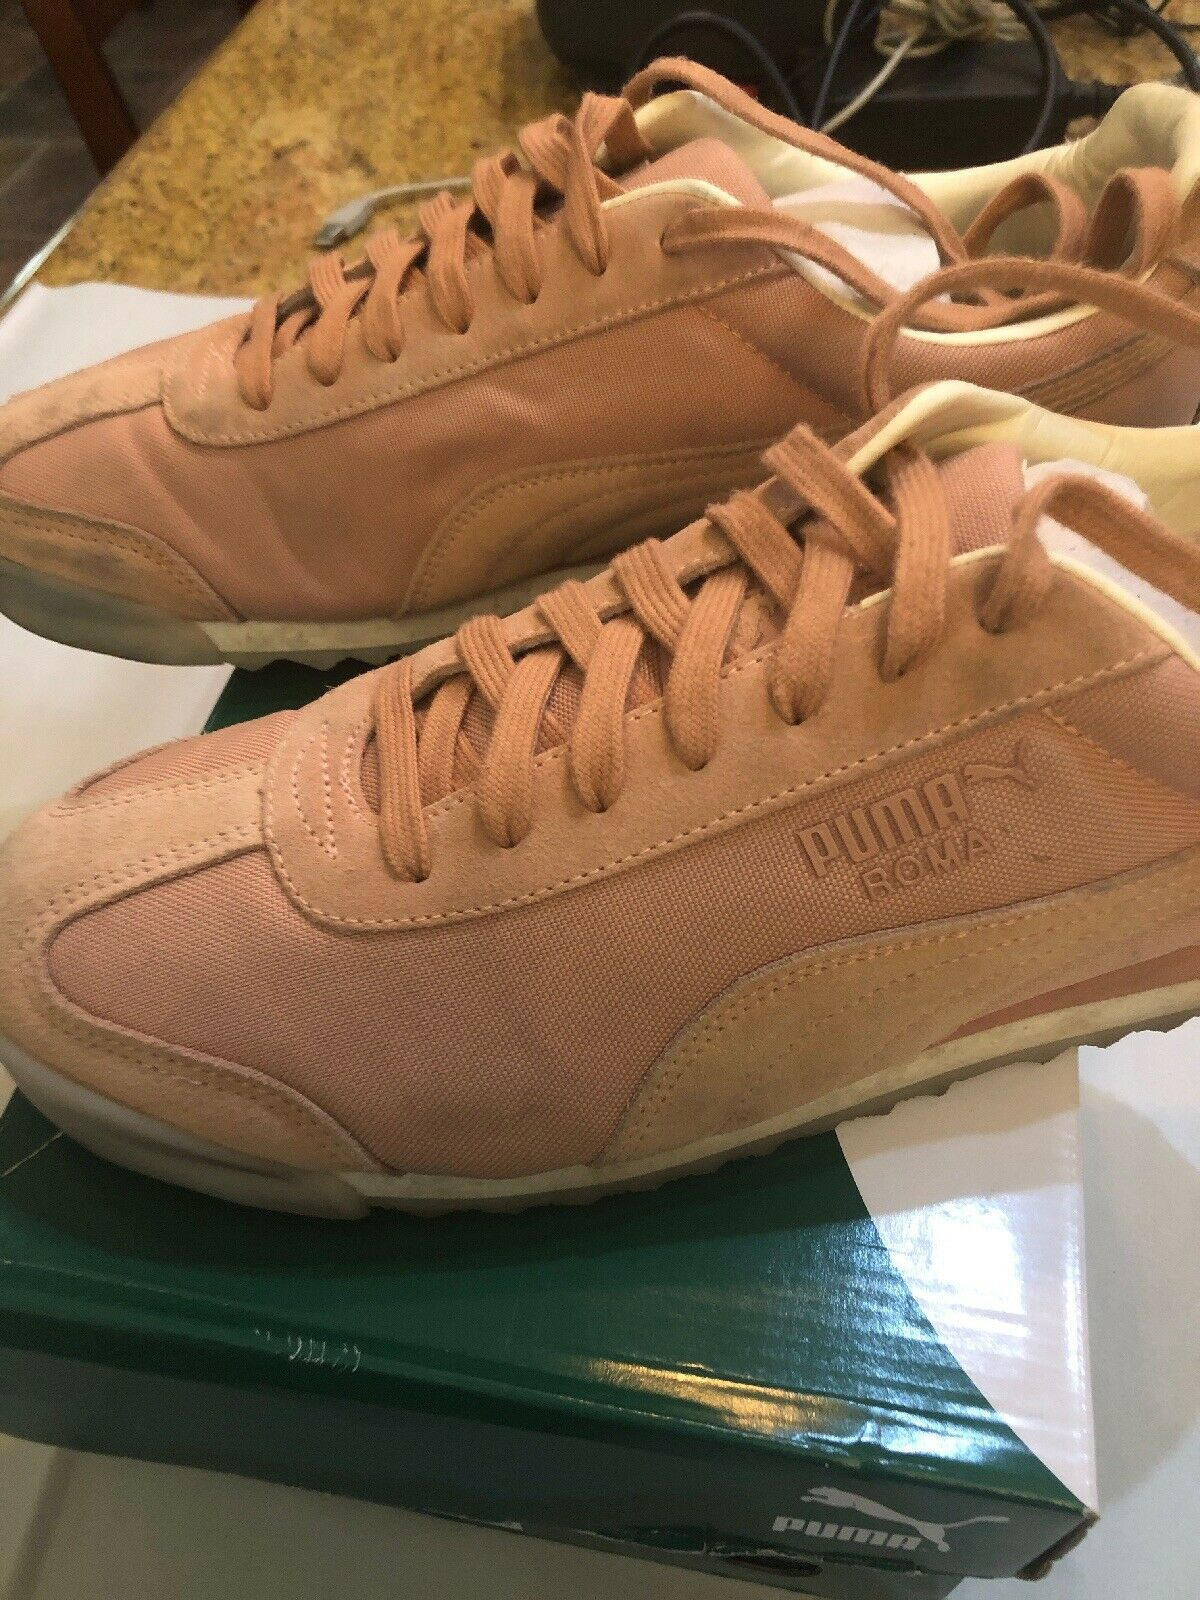 PO Puma Roma Summer Mens Pink Canvas Lace Up Sneakers shoes 10.5